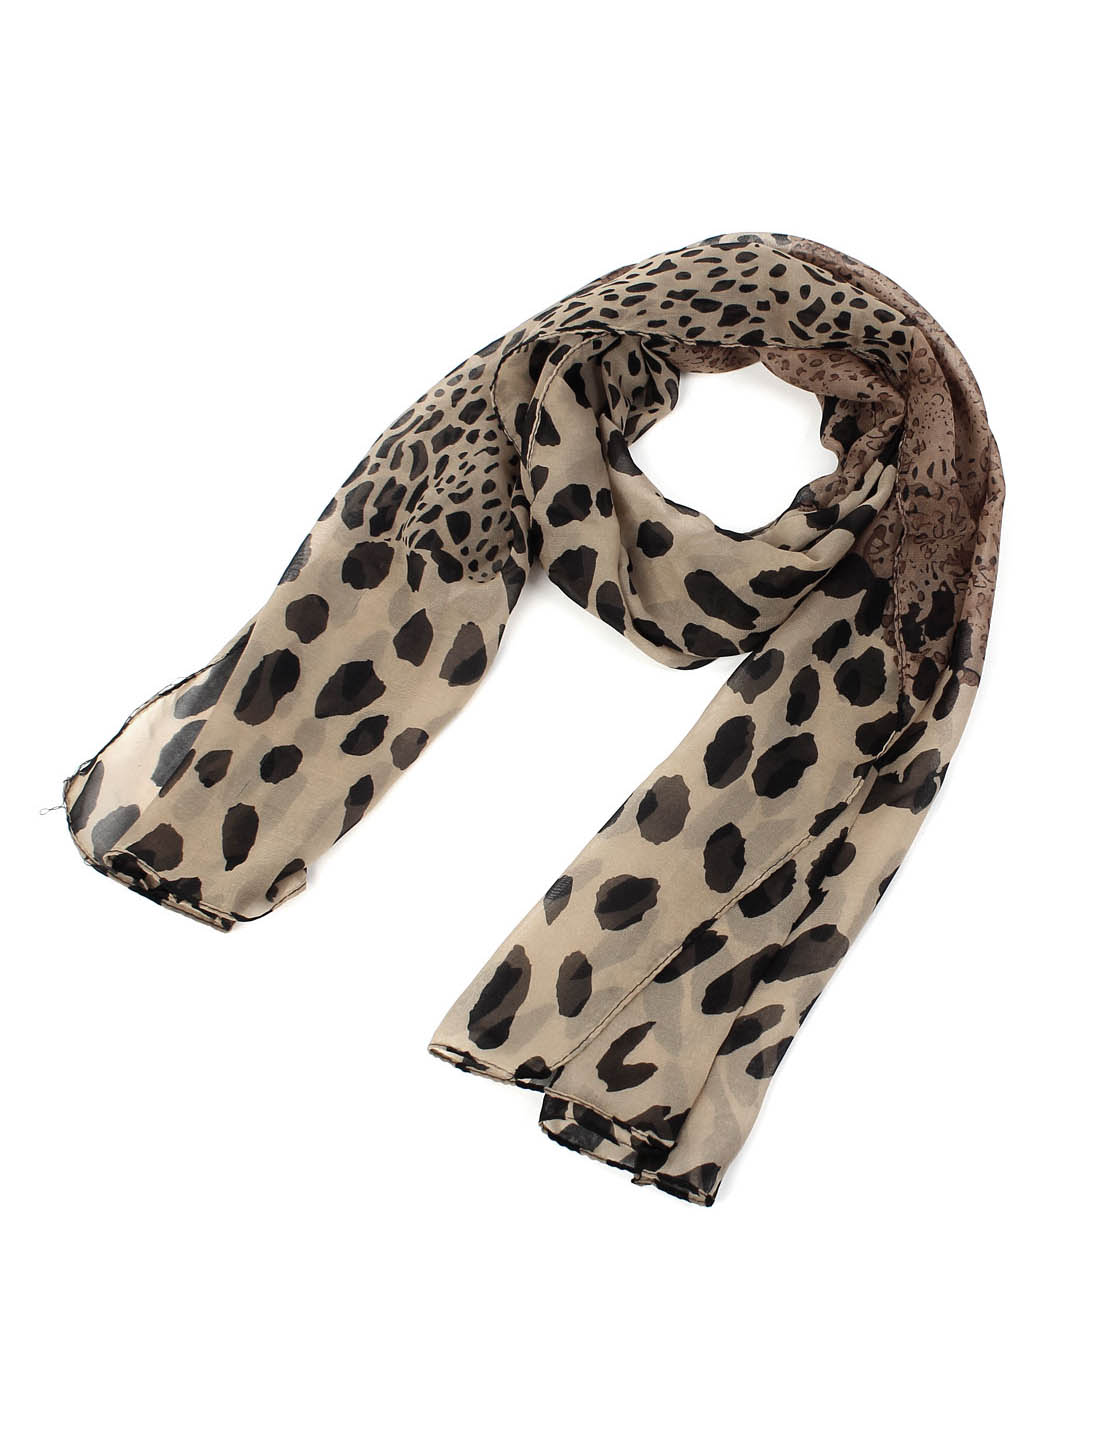 Lady Fashion Leopard Print Long Soft Chiffon Scarf Shawl Wrap Black Coffee Color